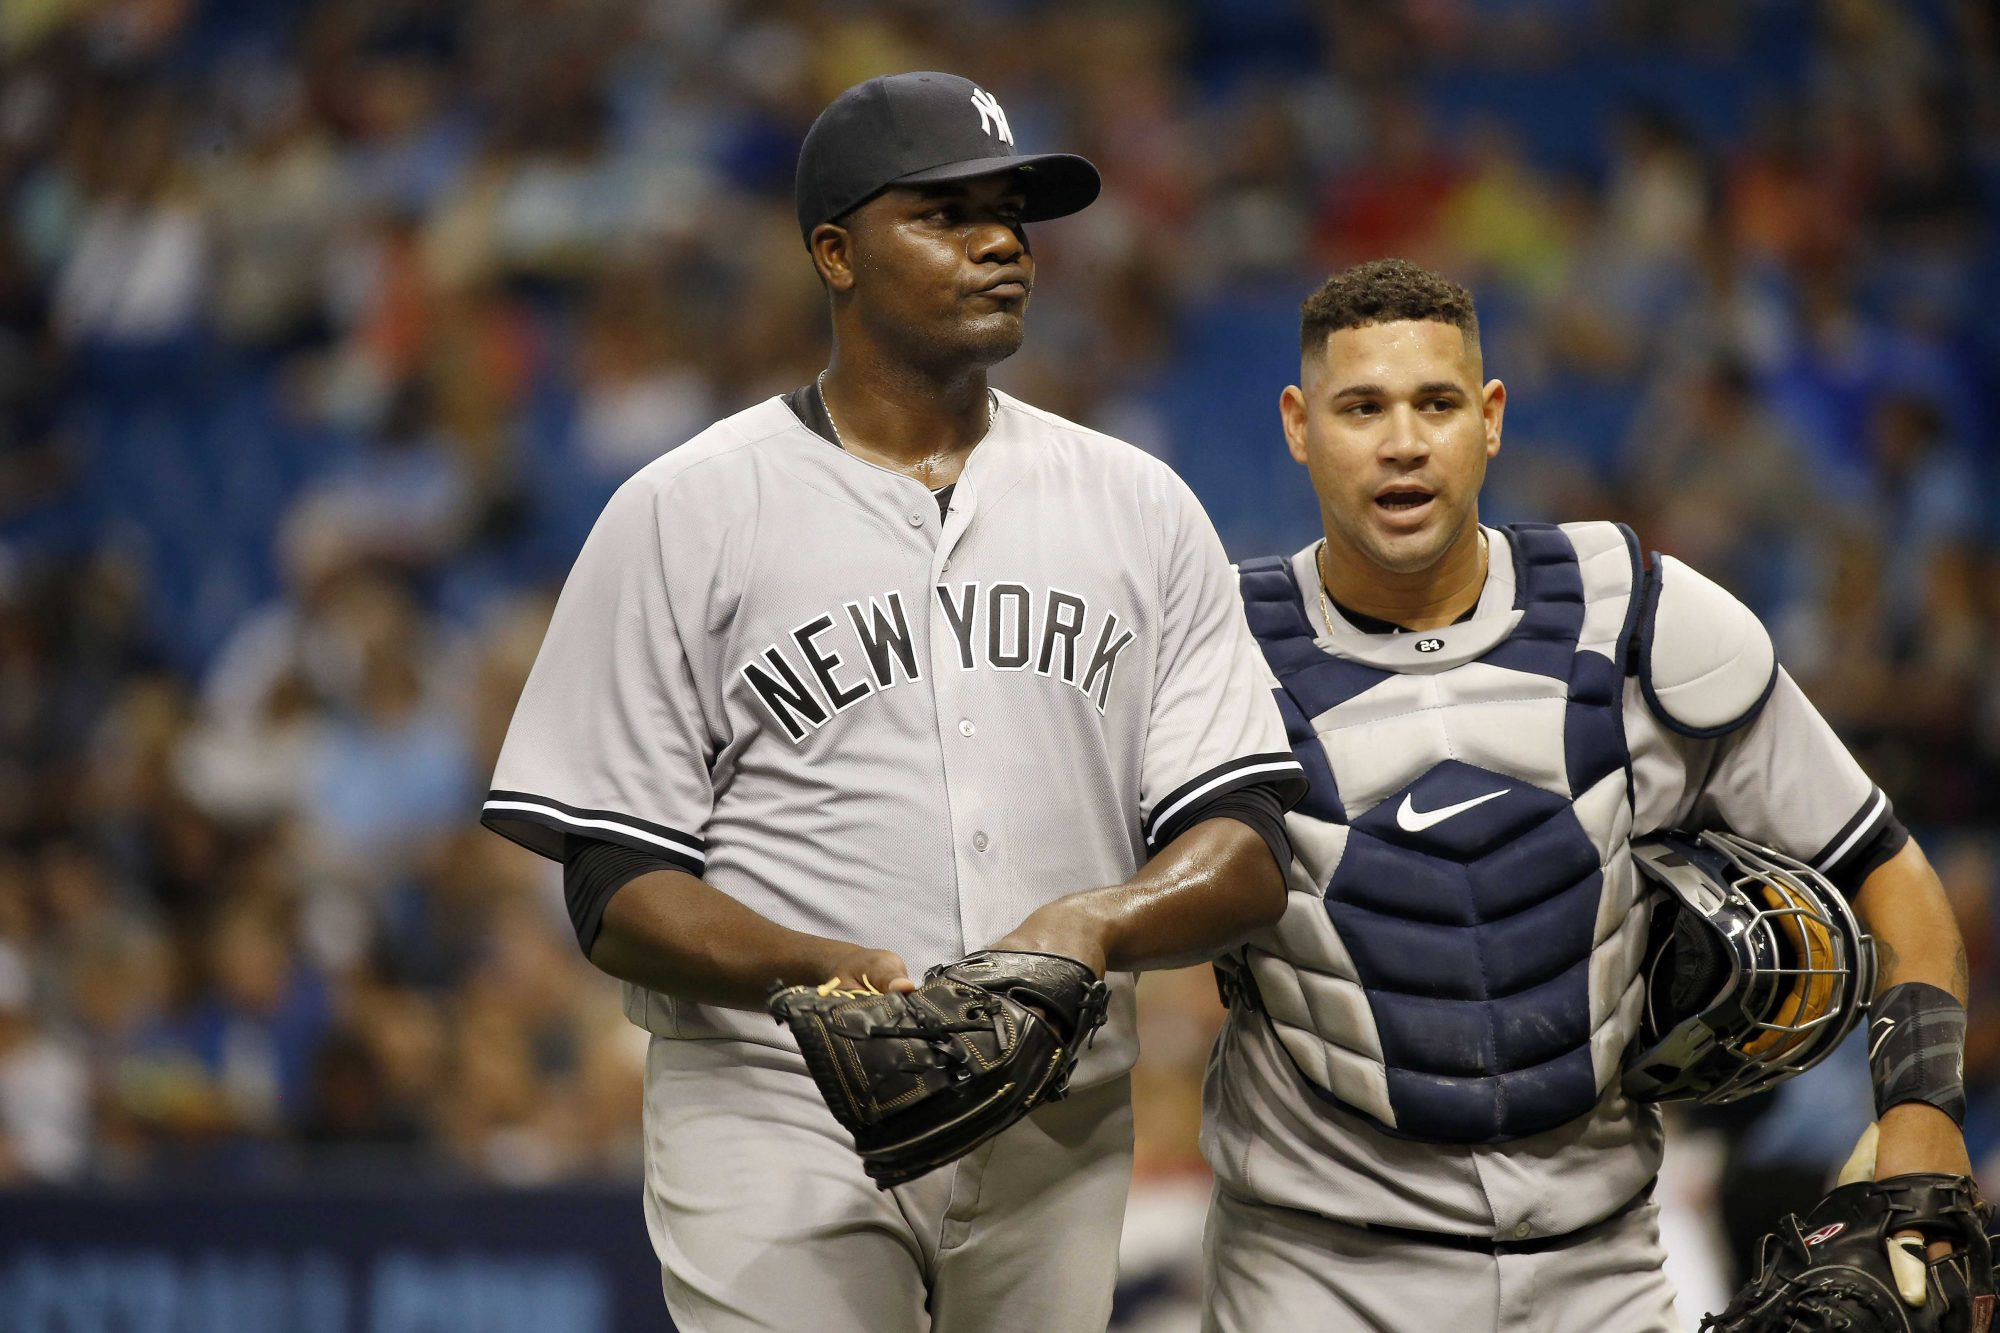 New York Yankees: 2016 Struggles are Carrying Over to This Season 2